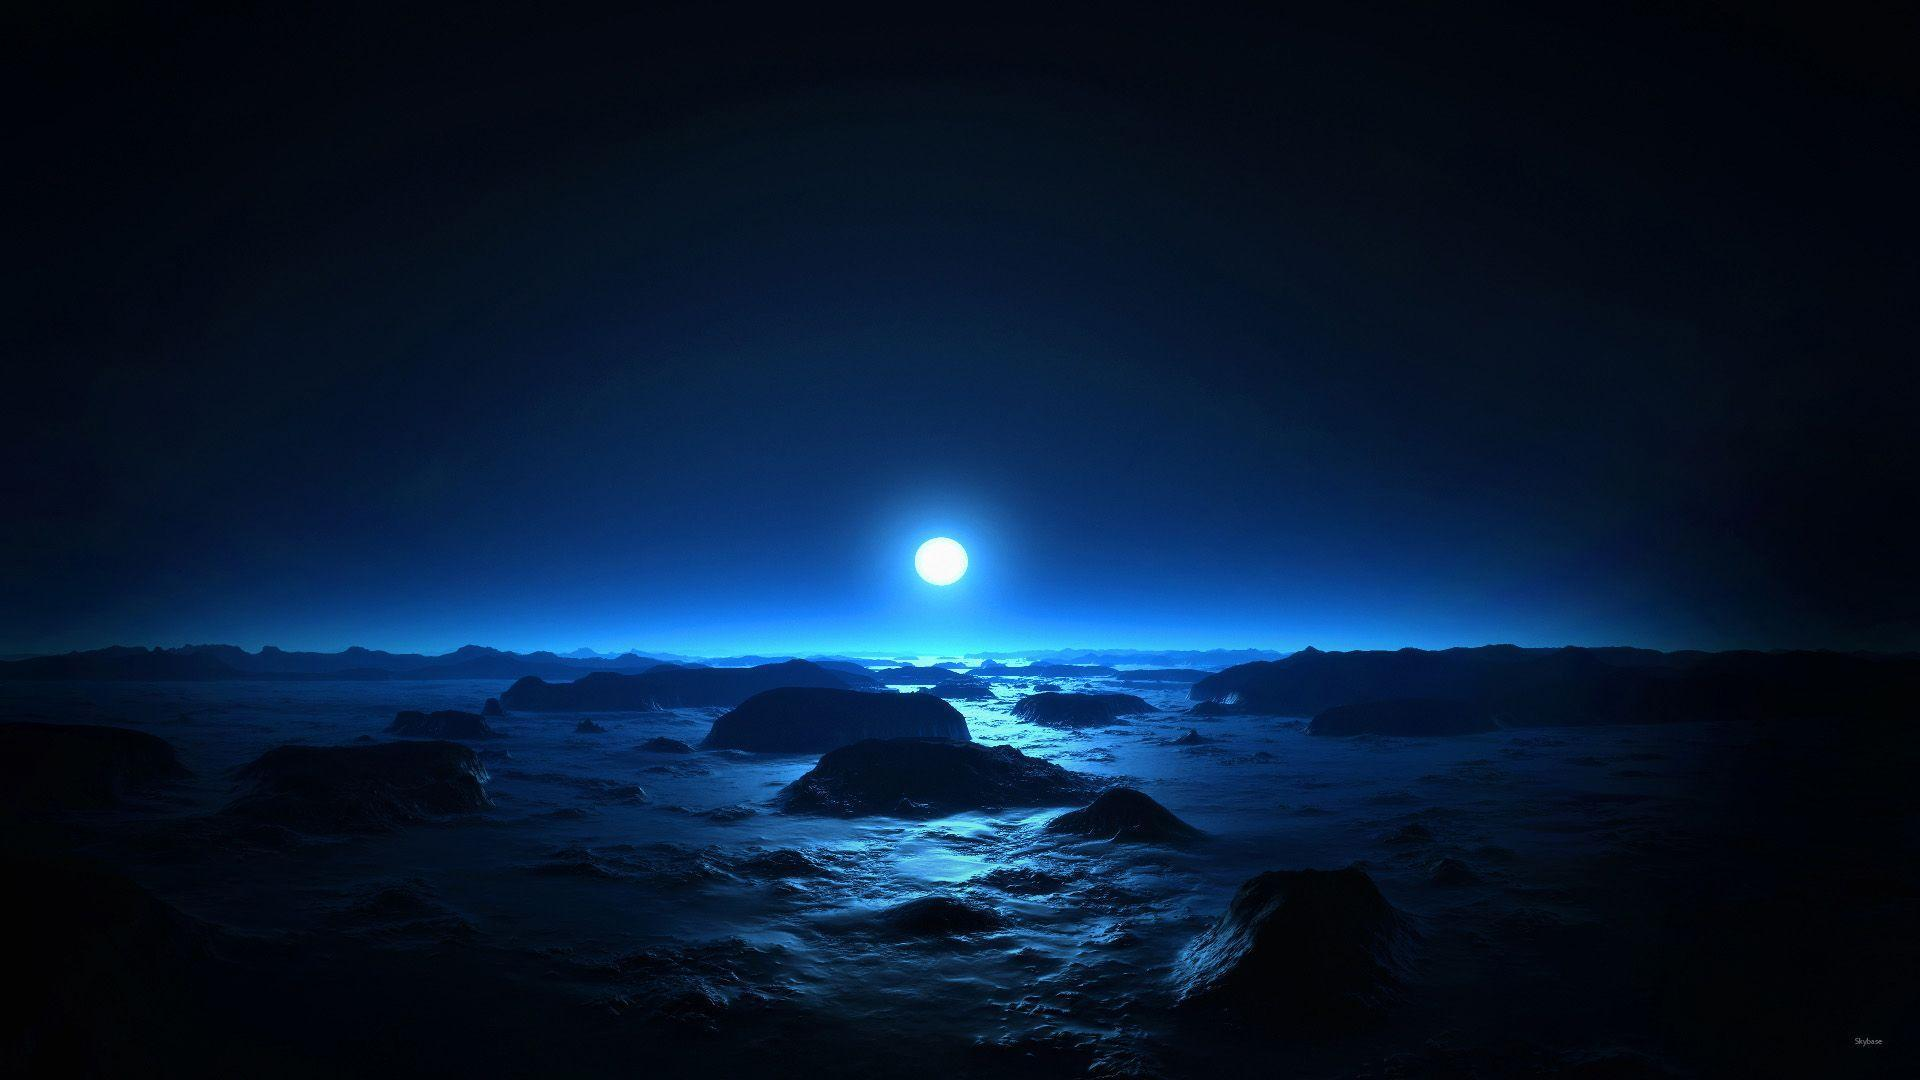 Moonlight Night Wallpapers - Wallpaper Cave